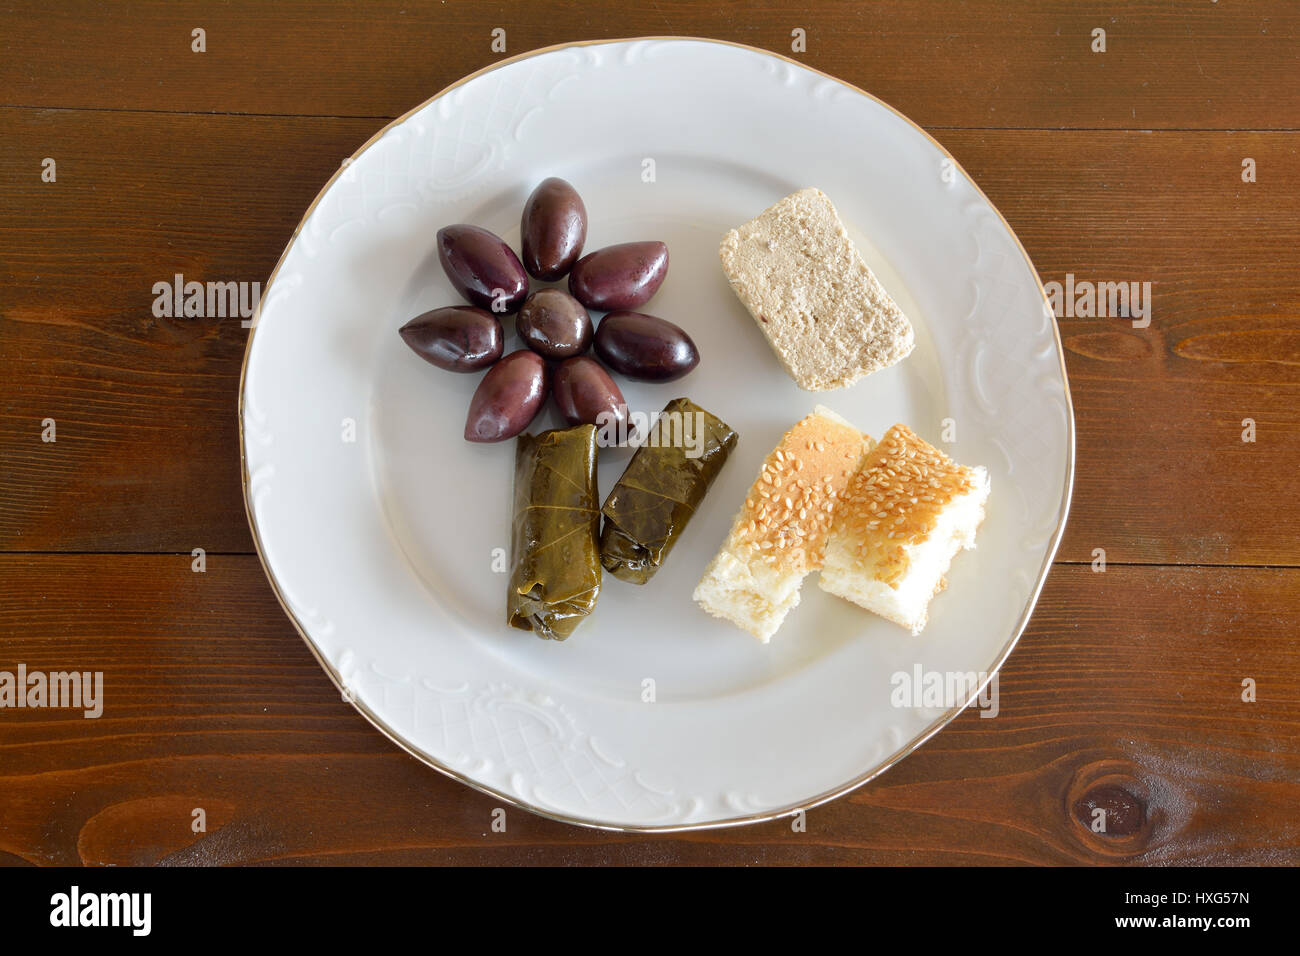 Fasting food concept of plate with olives, dolma, sunflower halva and lagana - Stock Image